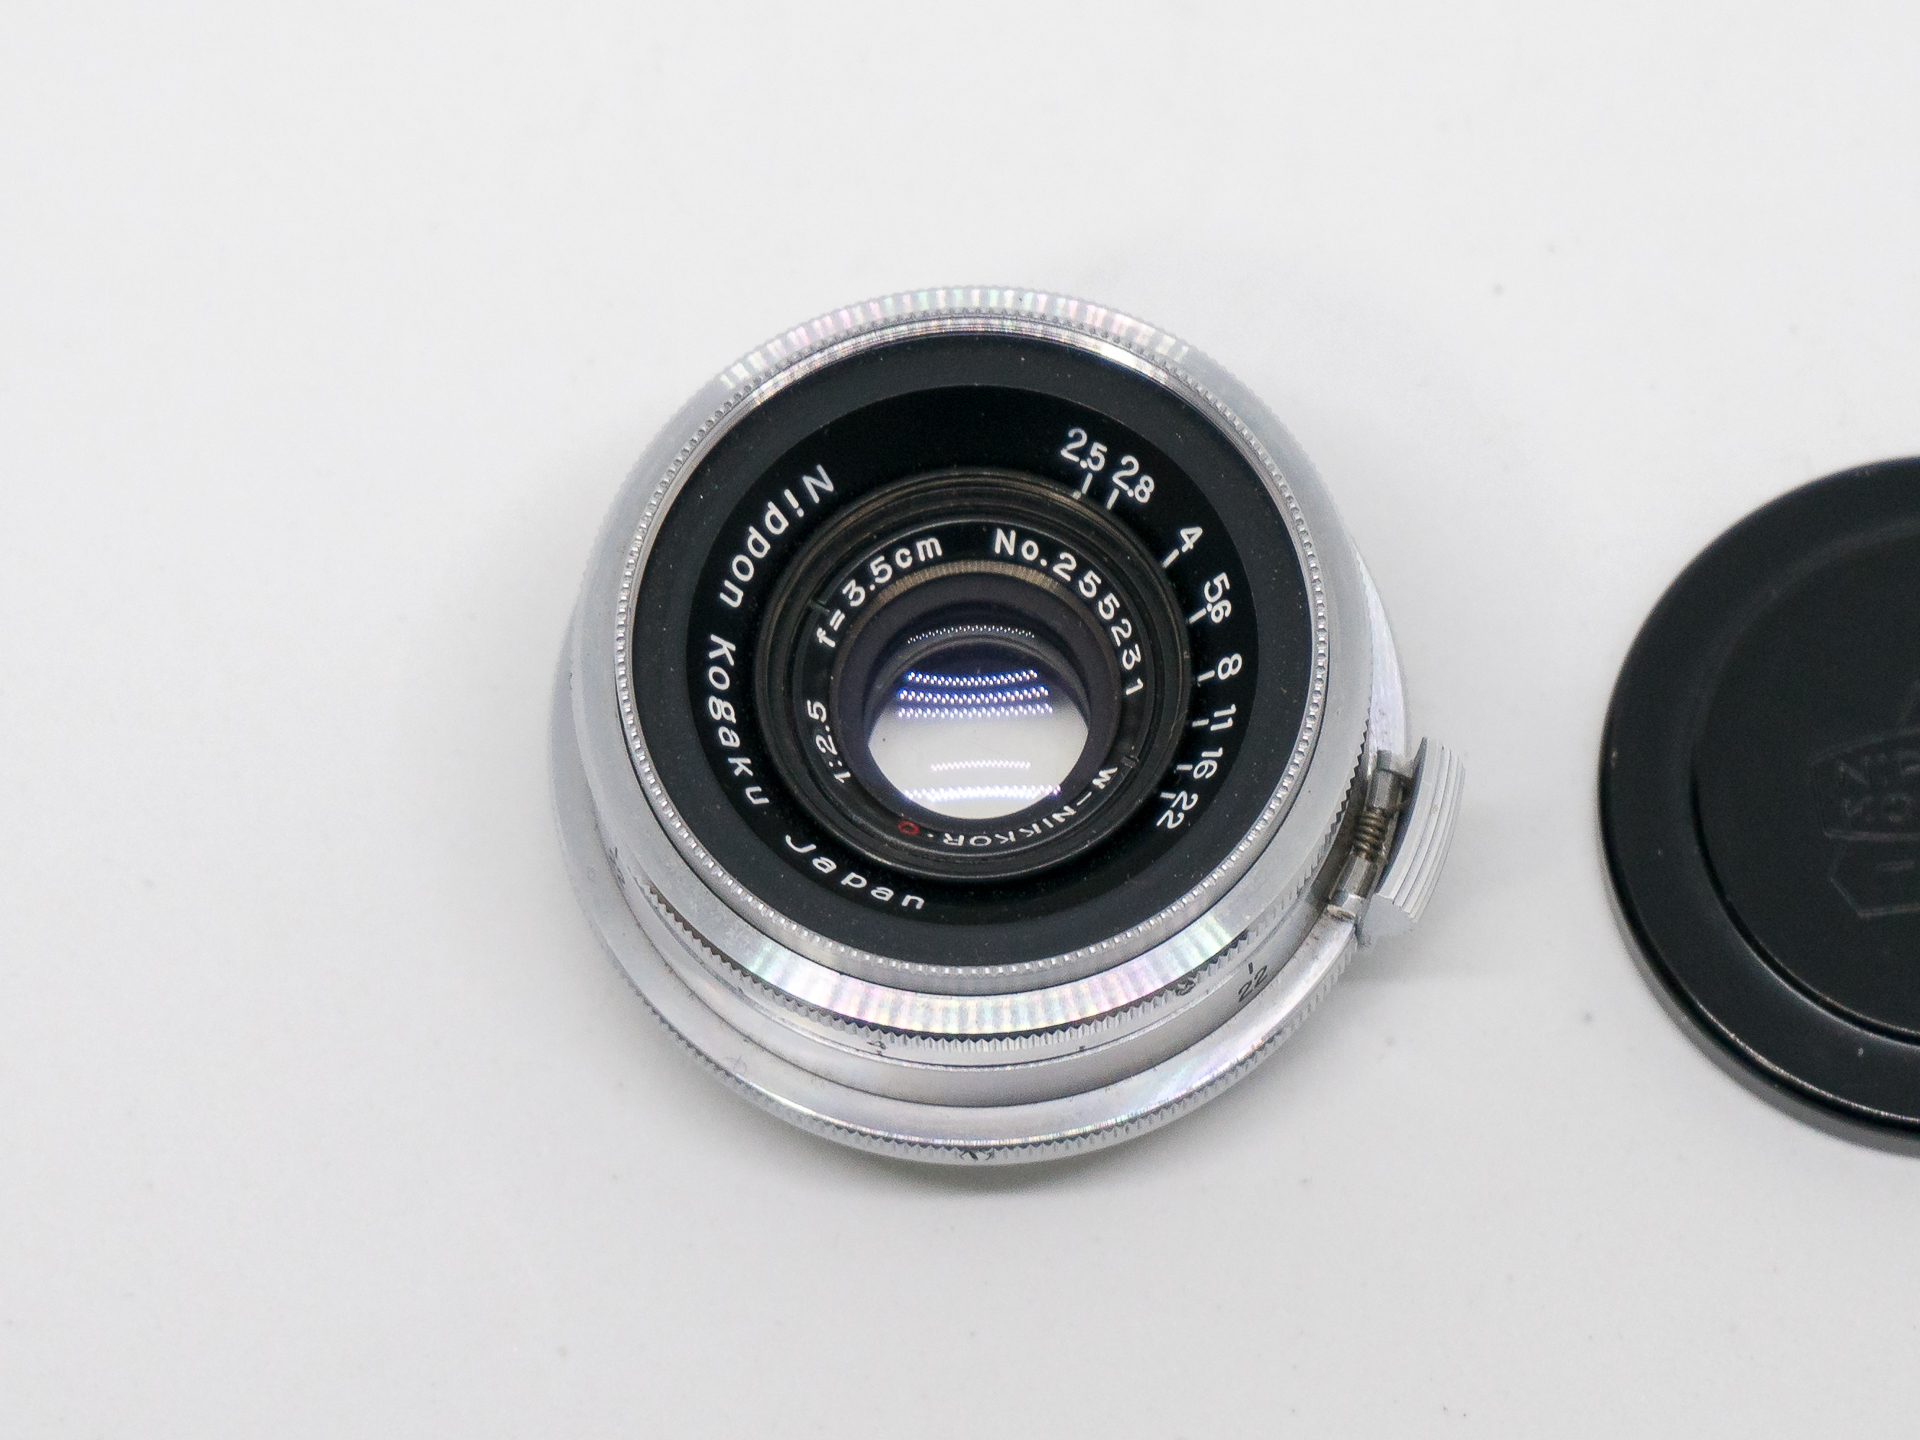 (SOLD) Nikon RF Nikkor 35mm f2.5 lens Nikon-S mount, for mirrorless digital   (245 USD)